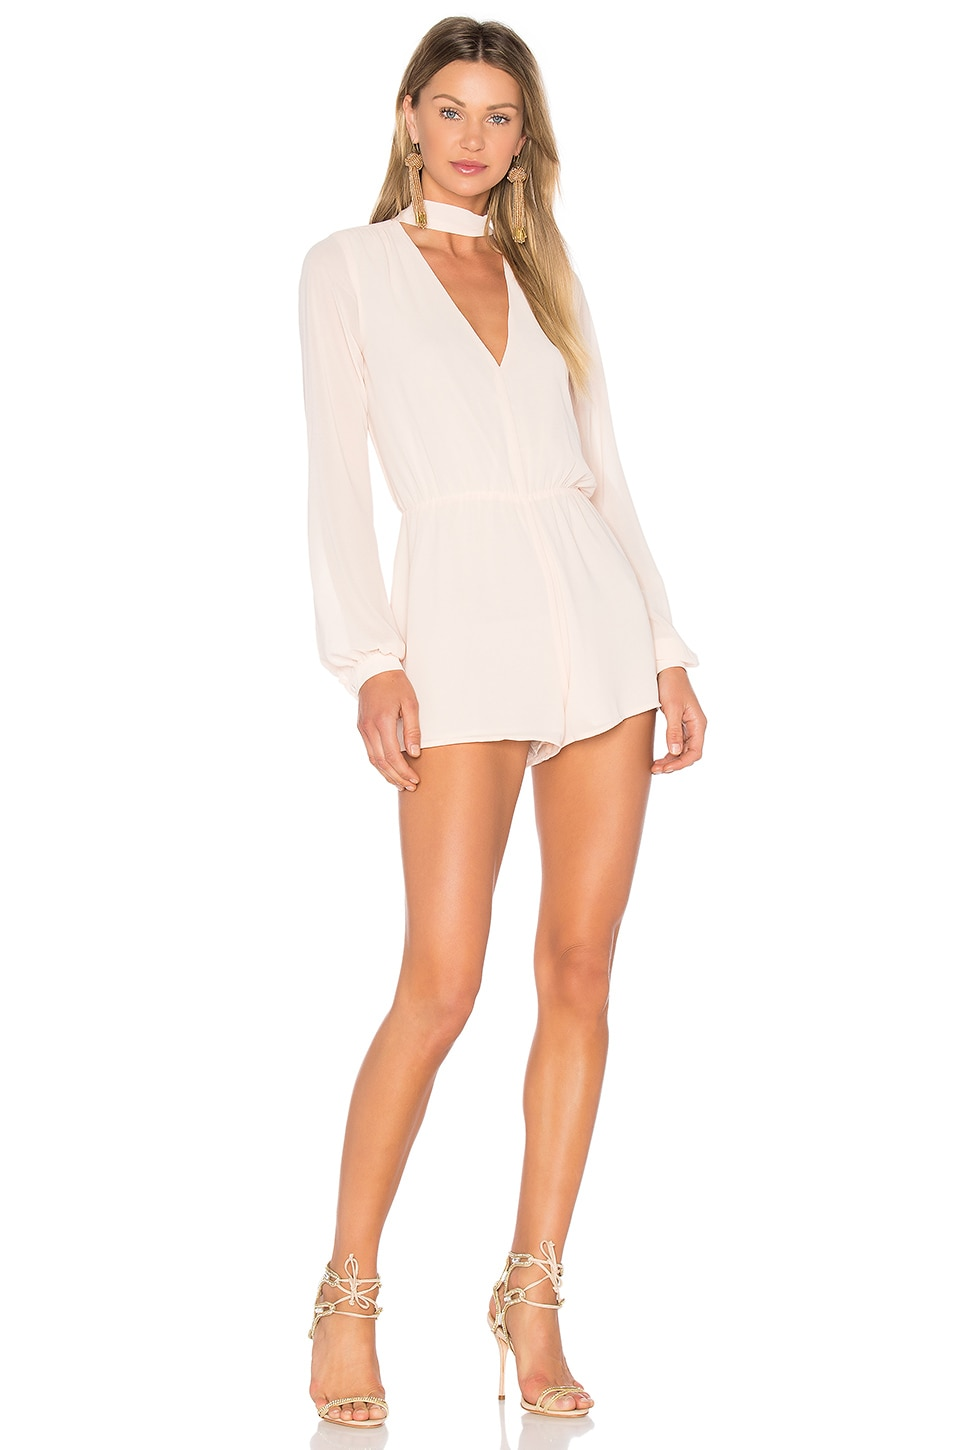 Lovers + Friends x REVOLVE Taylor Romper in Blush